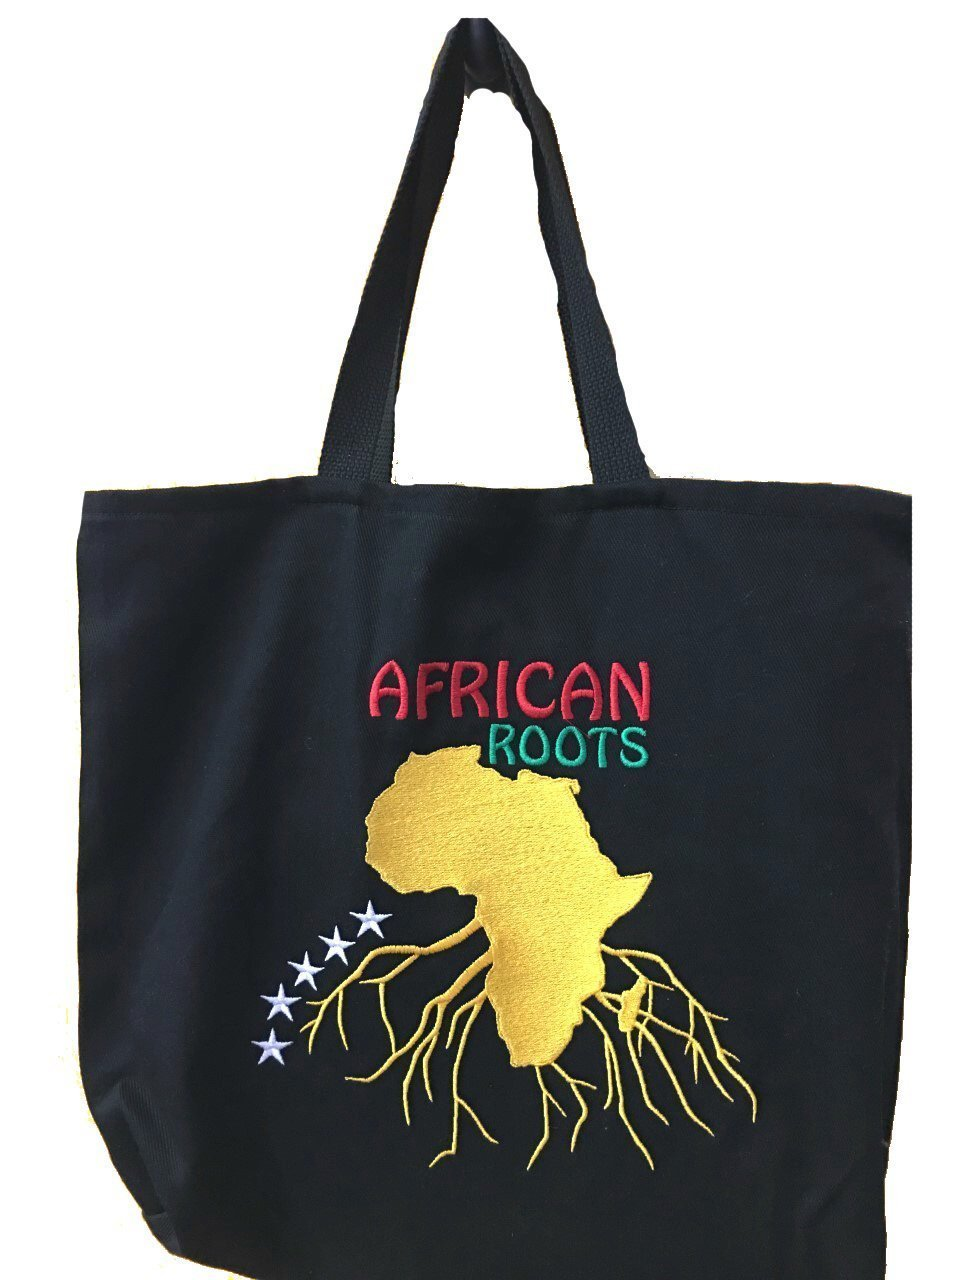 Embroidered Tote Bags Custom Printing Amp Embroidery Tee